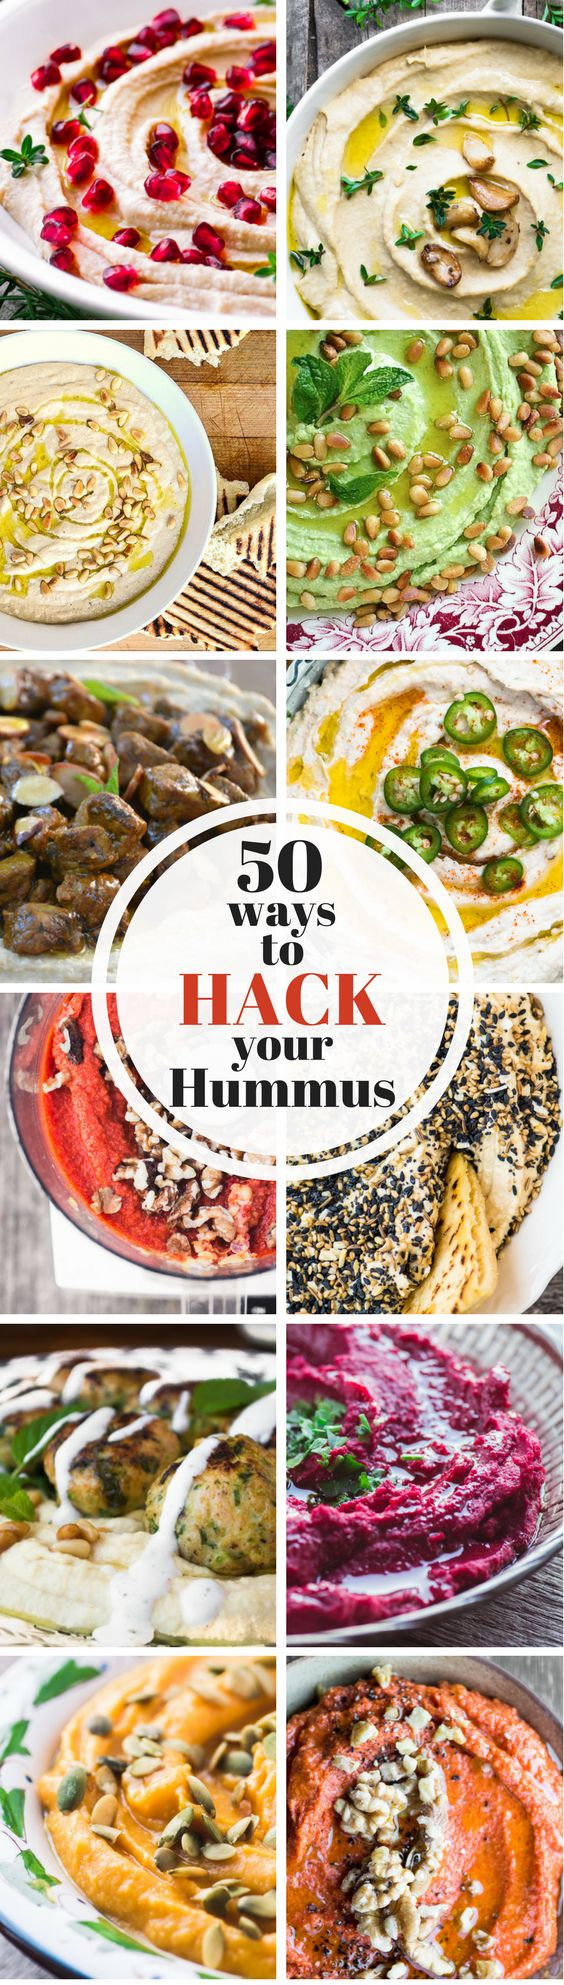 The doorbell just rang ~ and all you've got is a tub of hummus.  What to do?  Here are 50 ways to hack your hummus so you don't miss a step.  These fun and easy appetizers will get the party started ~ and everybody wins! ` theviewfromgreatisland.com